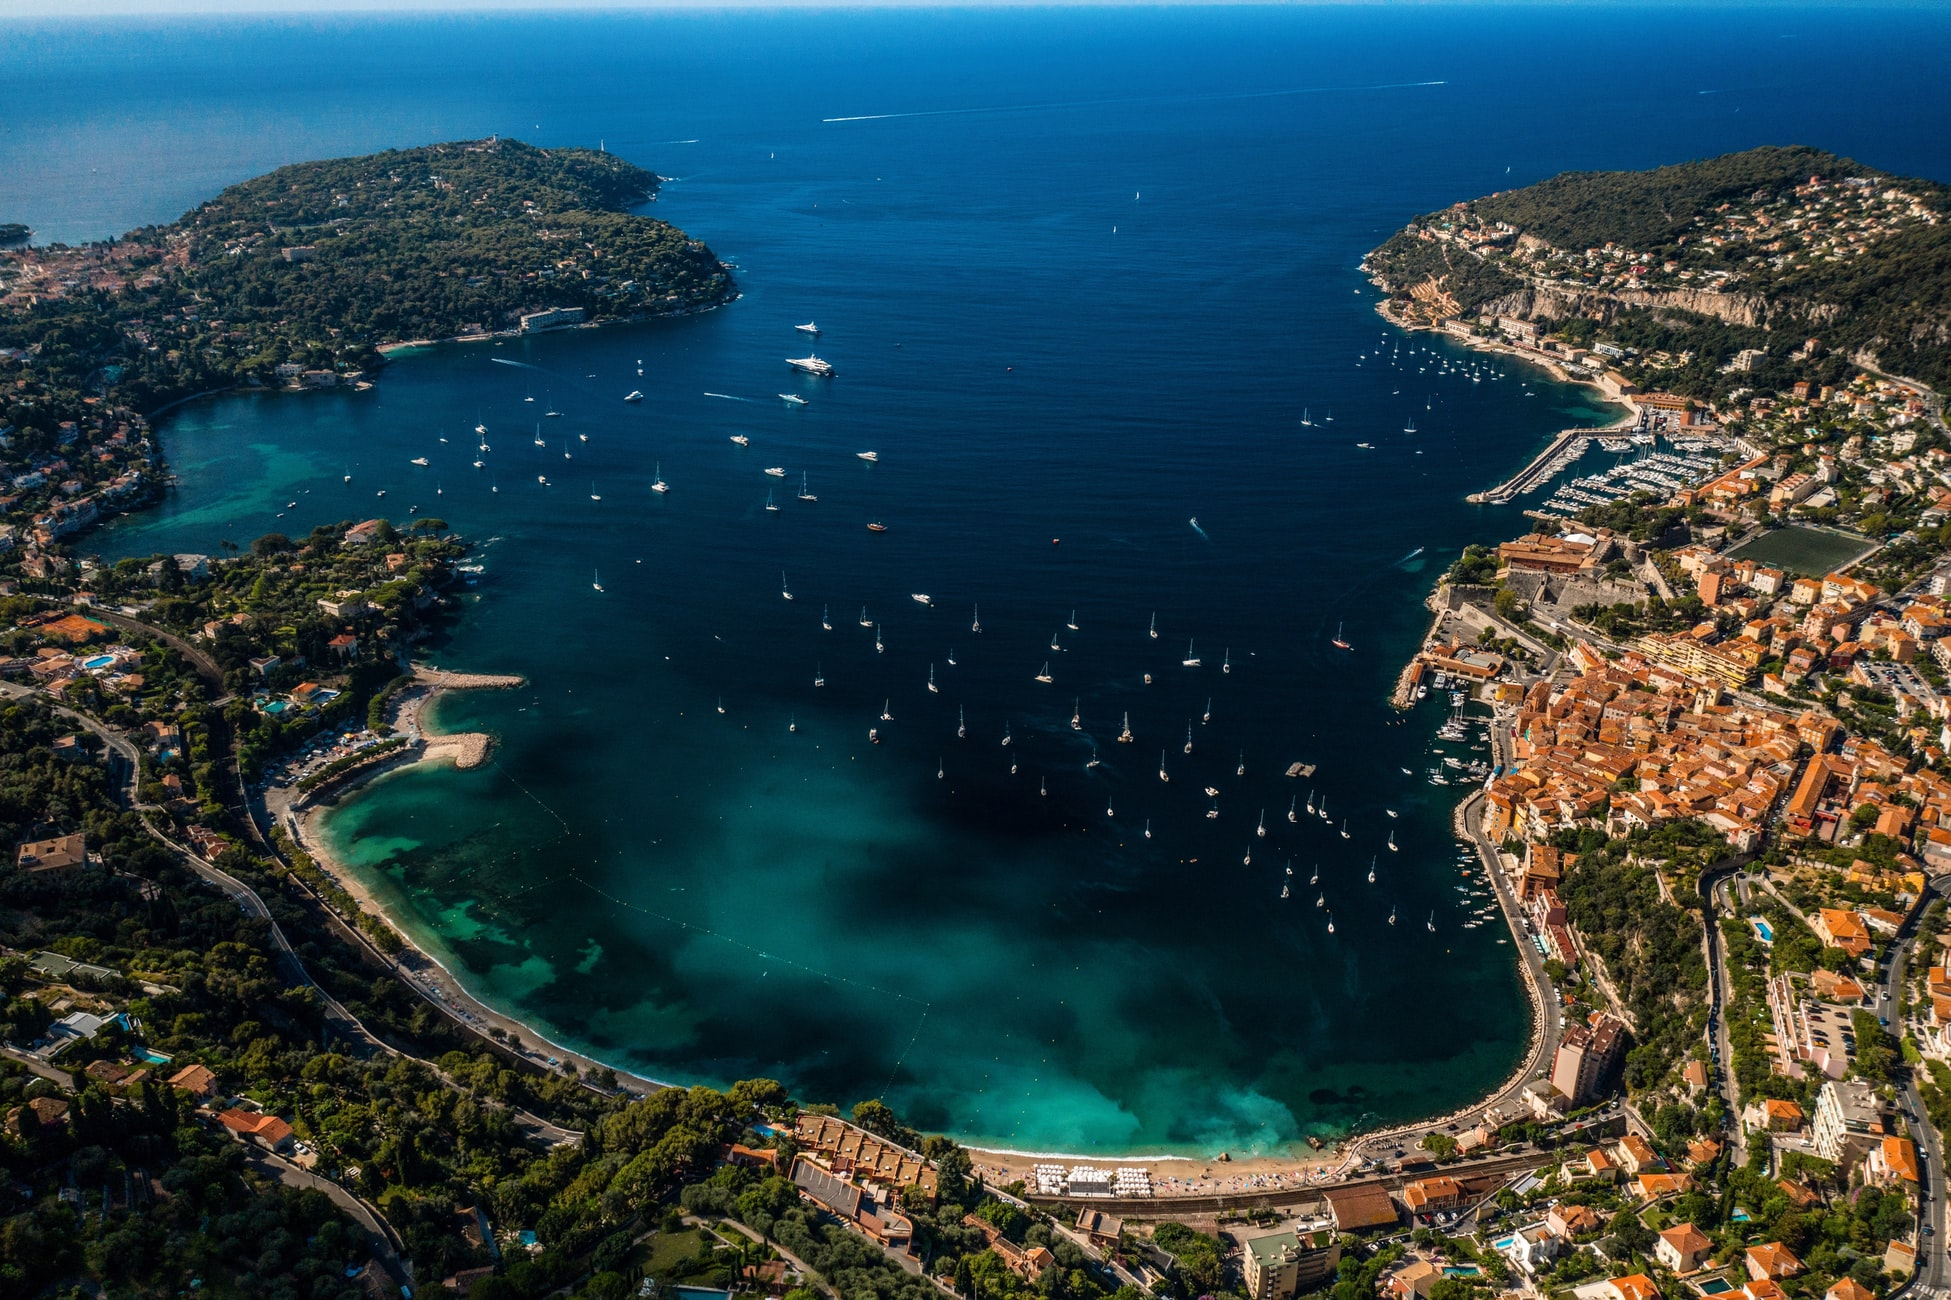 arial view of Villefranche-sur-Mer, France